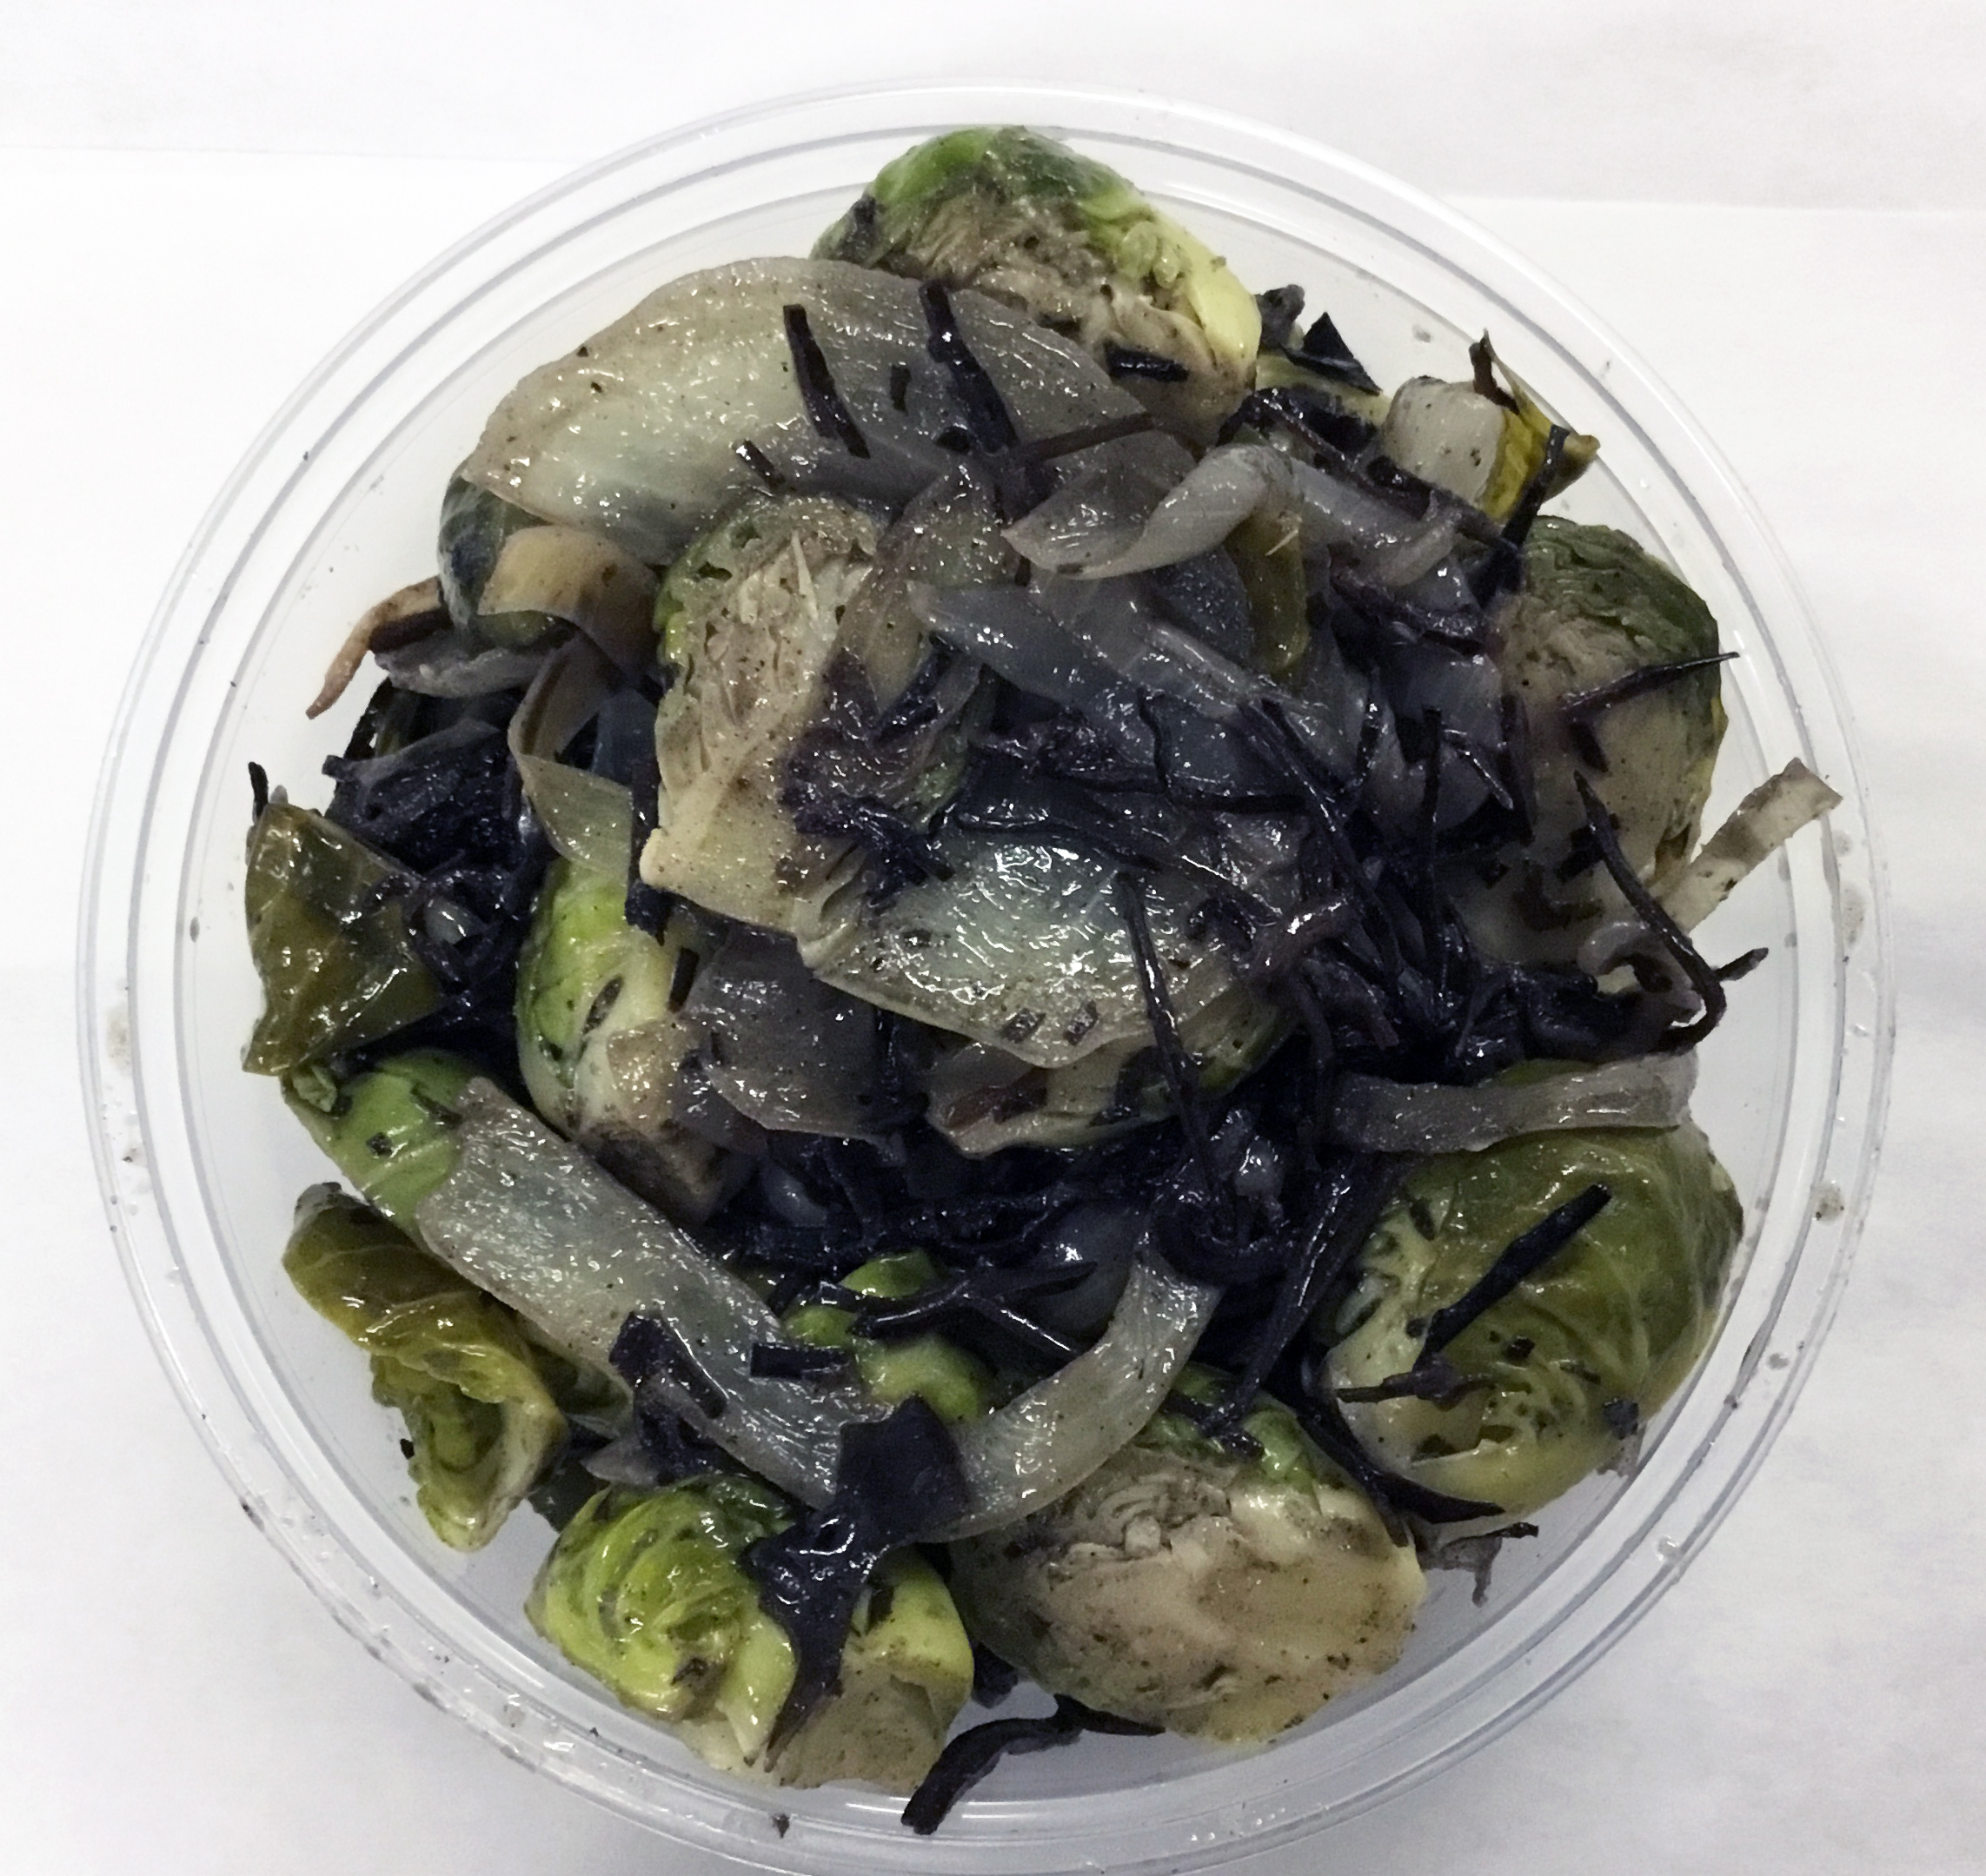 Brussel sprouts, onions and arame (seaweed).